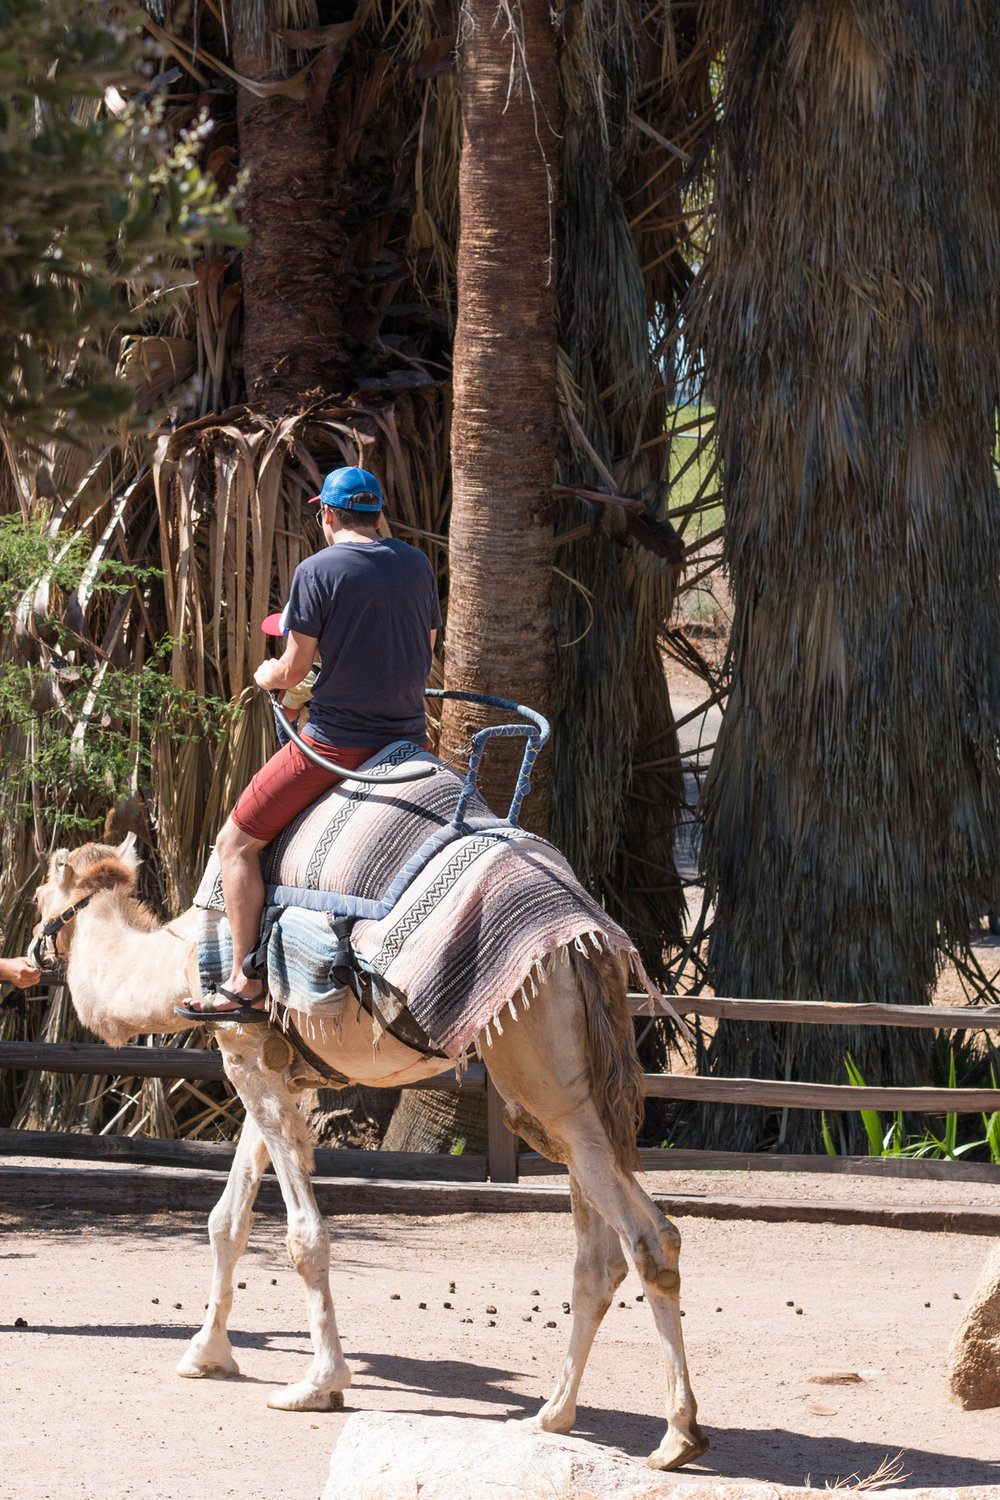 camel ride at the Phoenix Zoo